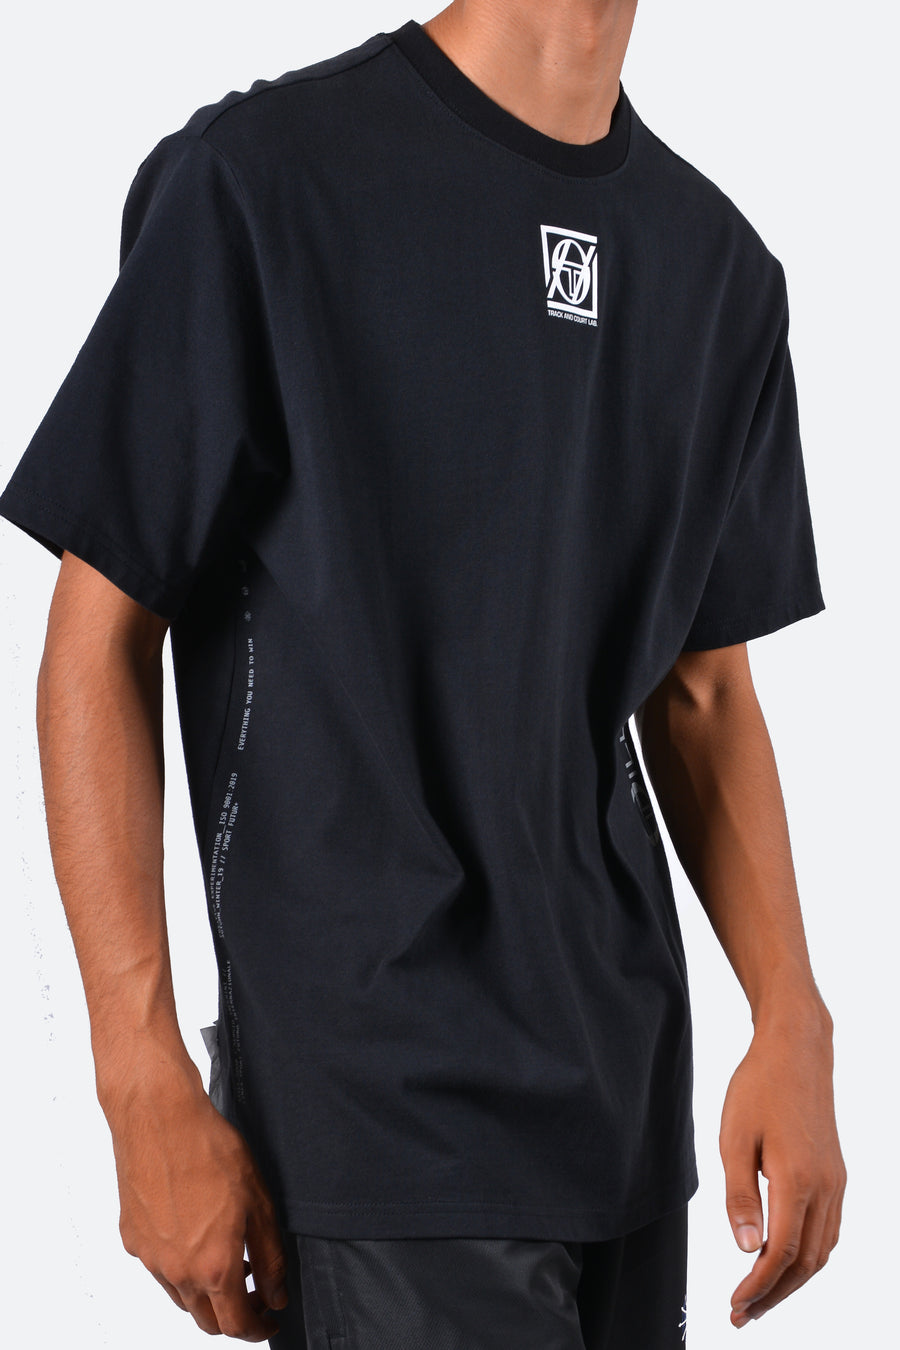 Sergio Tacchini Movement Tee | Still Good